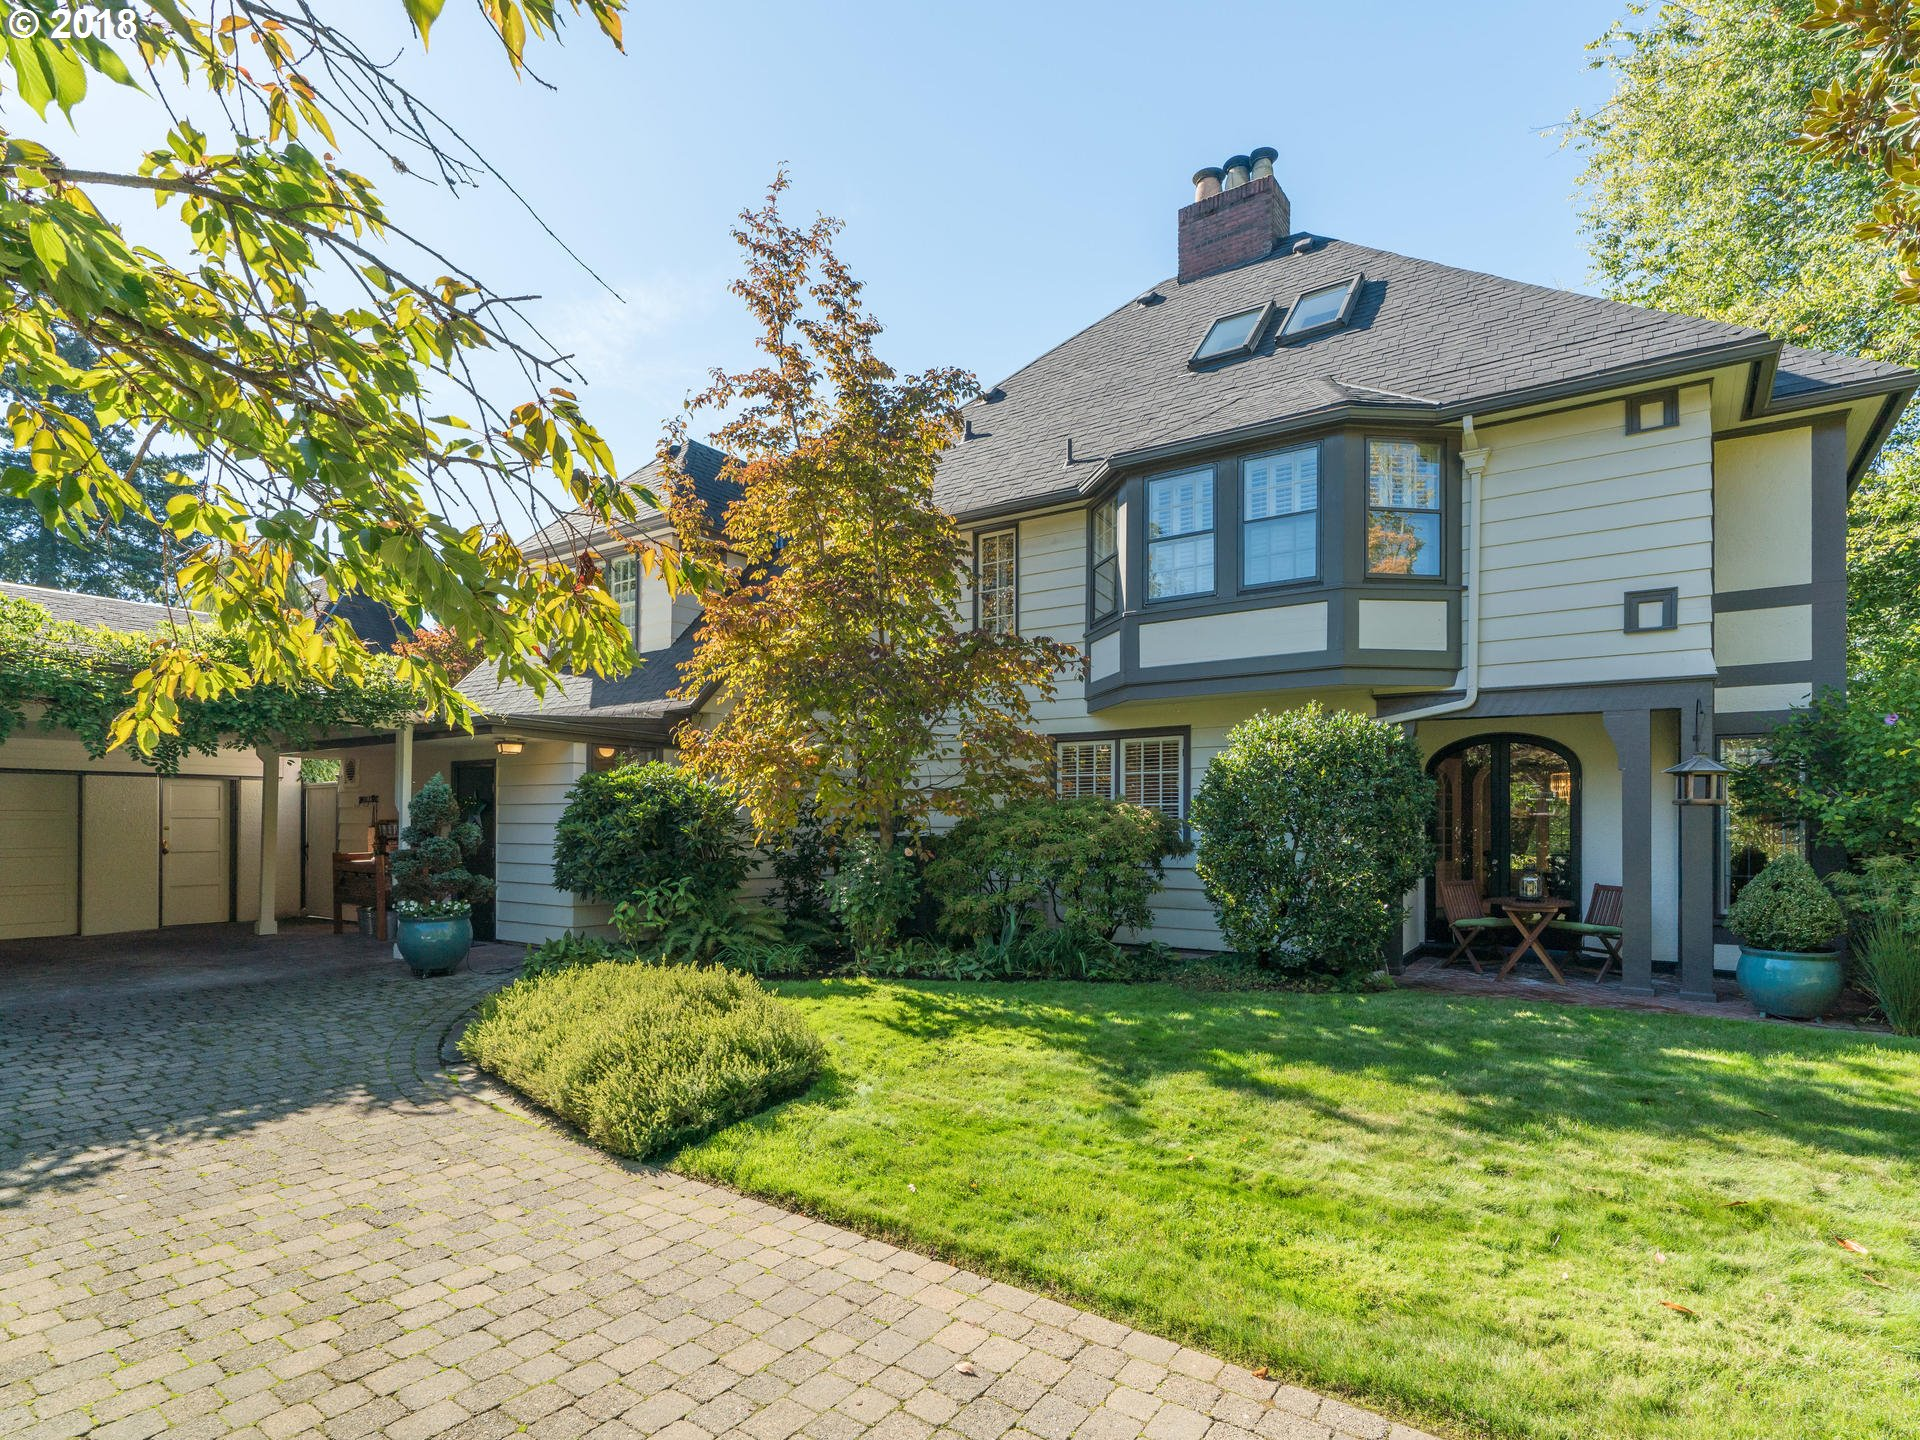 6206 SE 30TH AVE Portland, OR 97202 - MLS #: 18238082